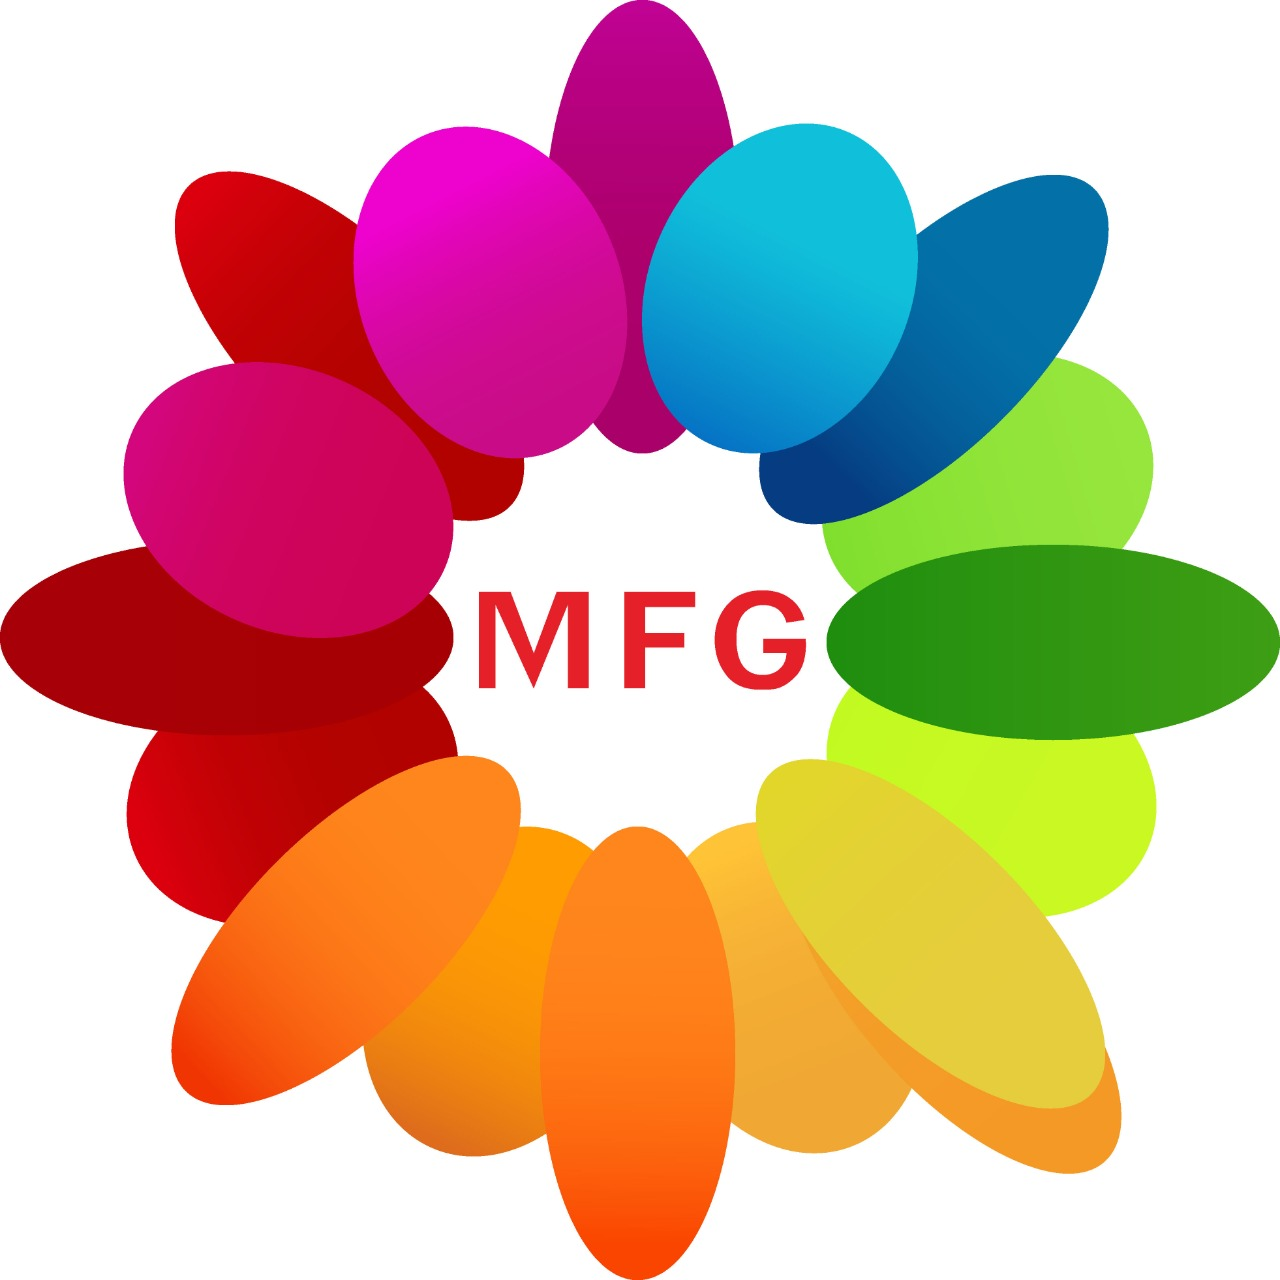 Bunch of 24 carnations with half kg chocovanilla cake with bottle of wine